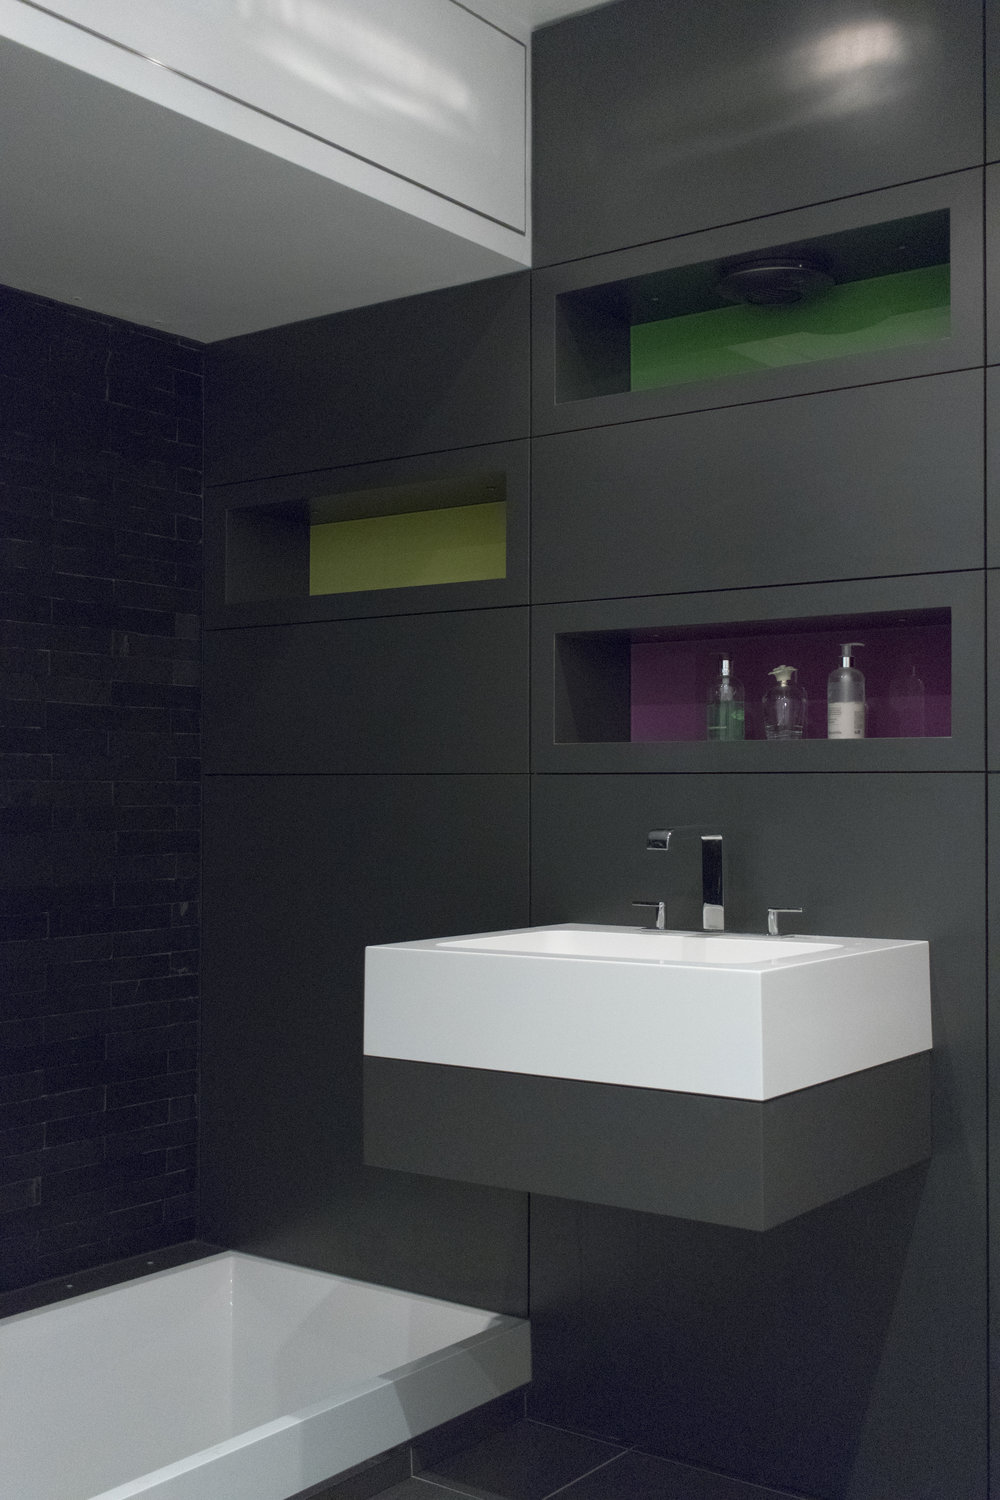 Formica - Durable Formica has been applied to the panels, with coloured glass used to the rear of the shelves. The panels continue to wrap around the floor level bath and utility cupboard.